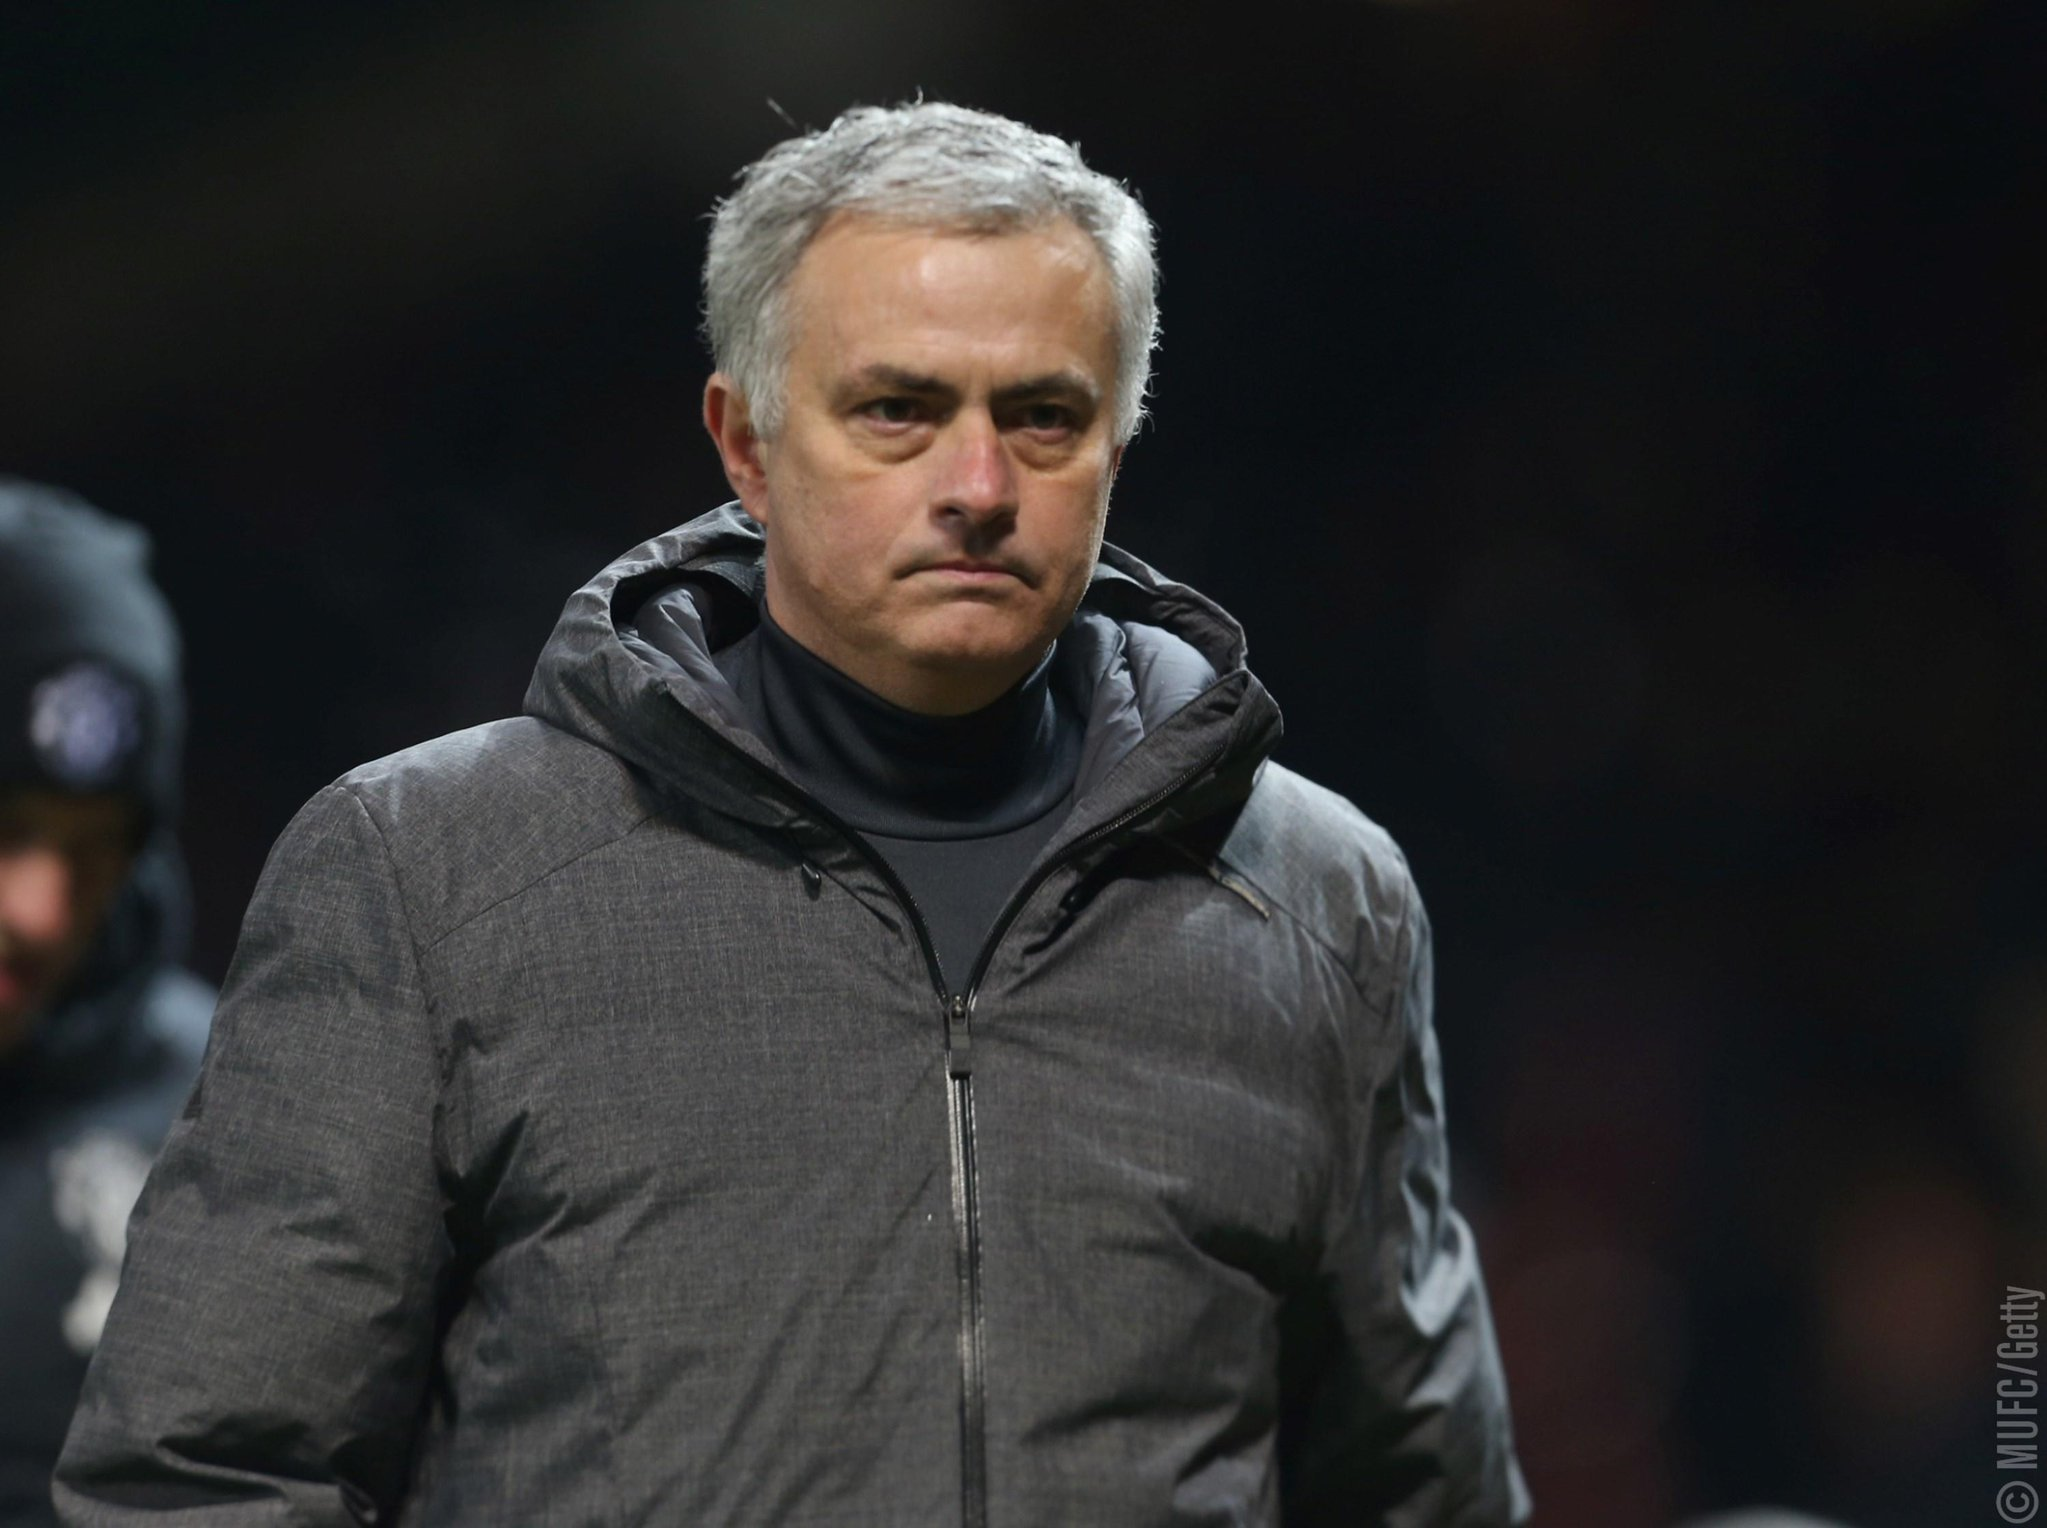 Mourinho Makes Match-Fixing Jibe At Conte As Feud Escalates